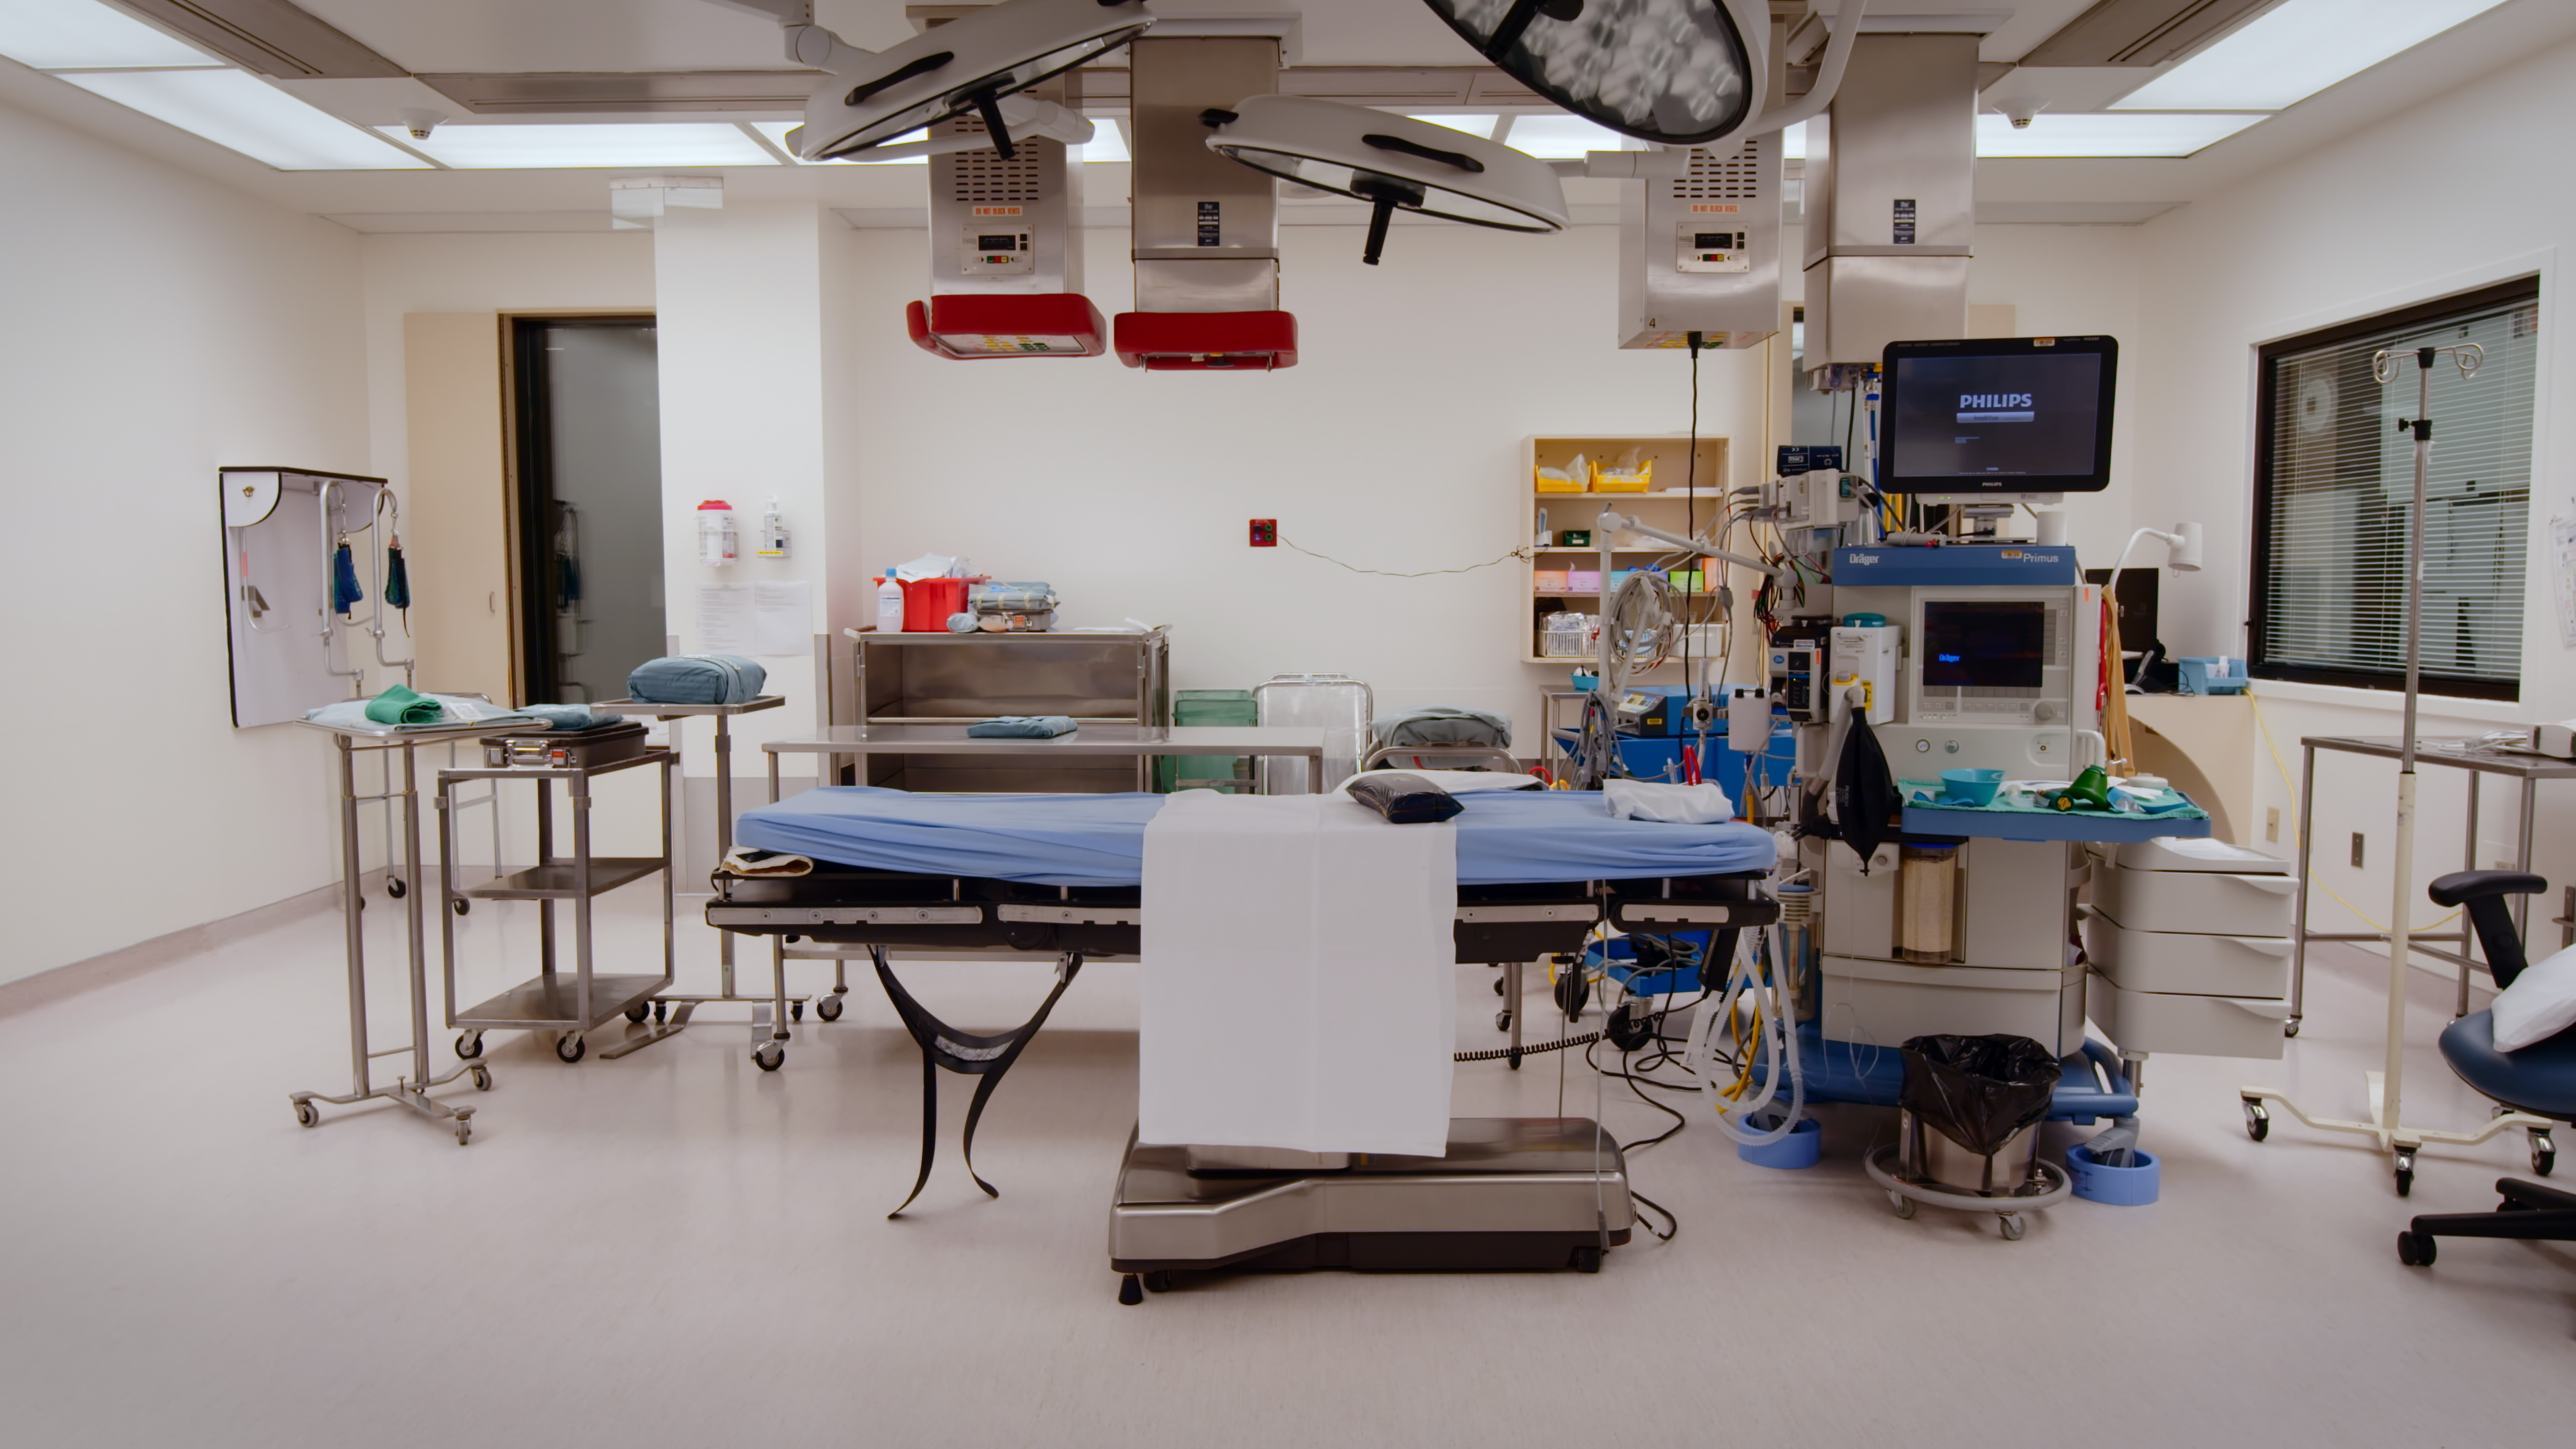 Operating room at the University of Alberta Hospital